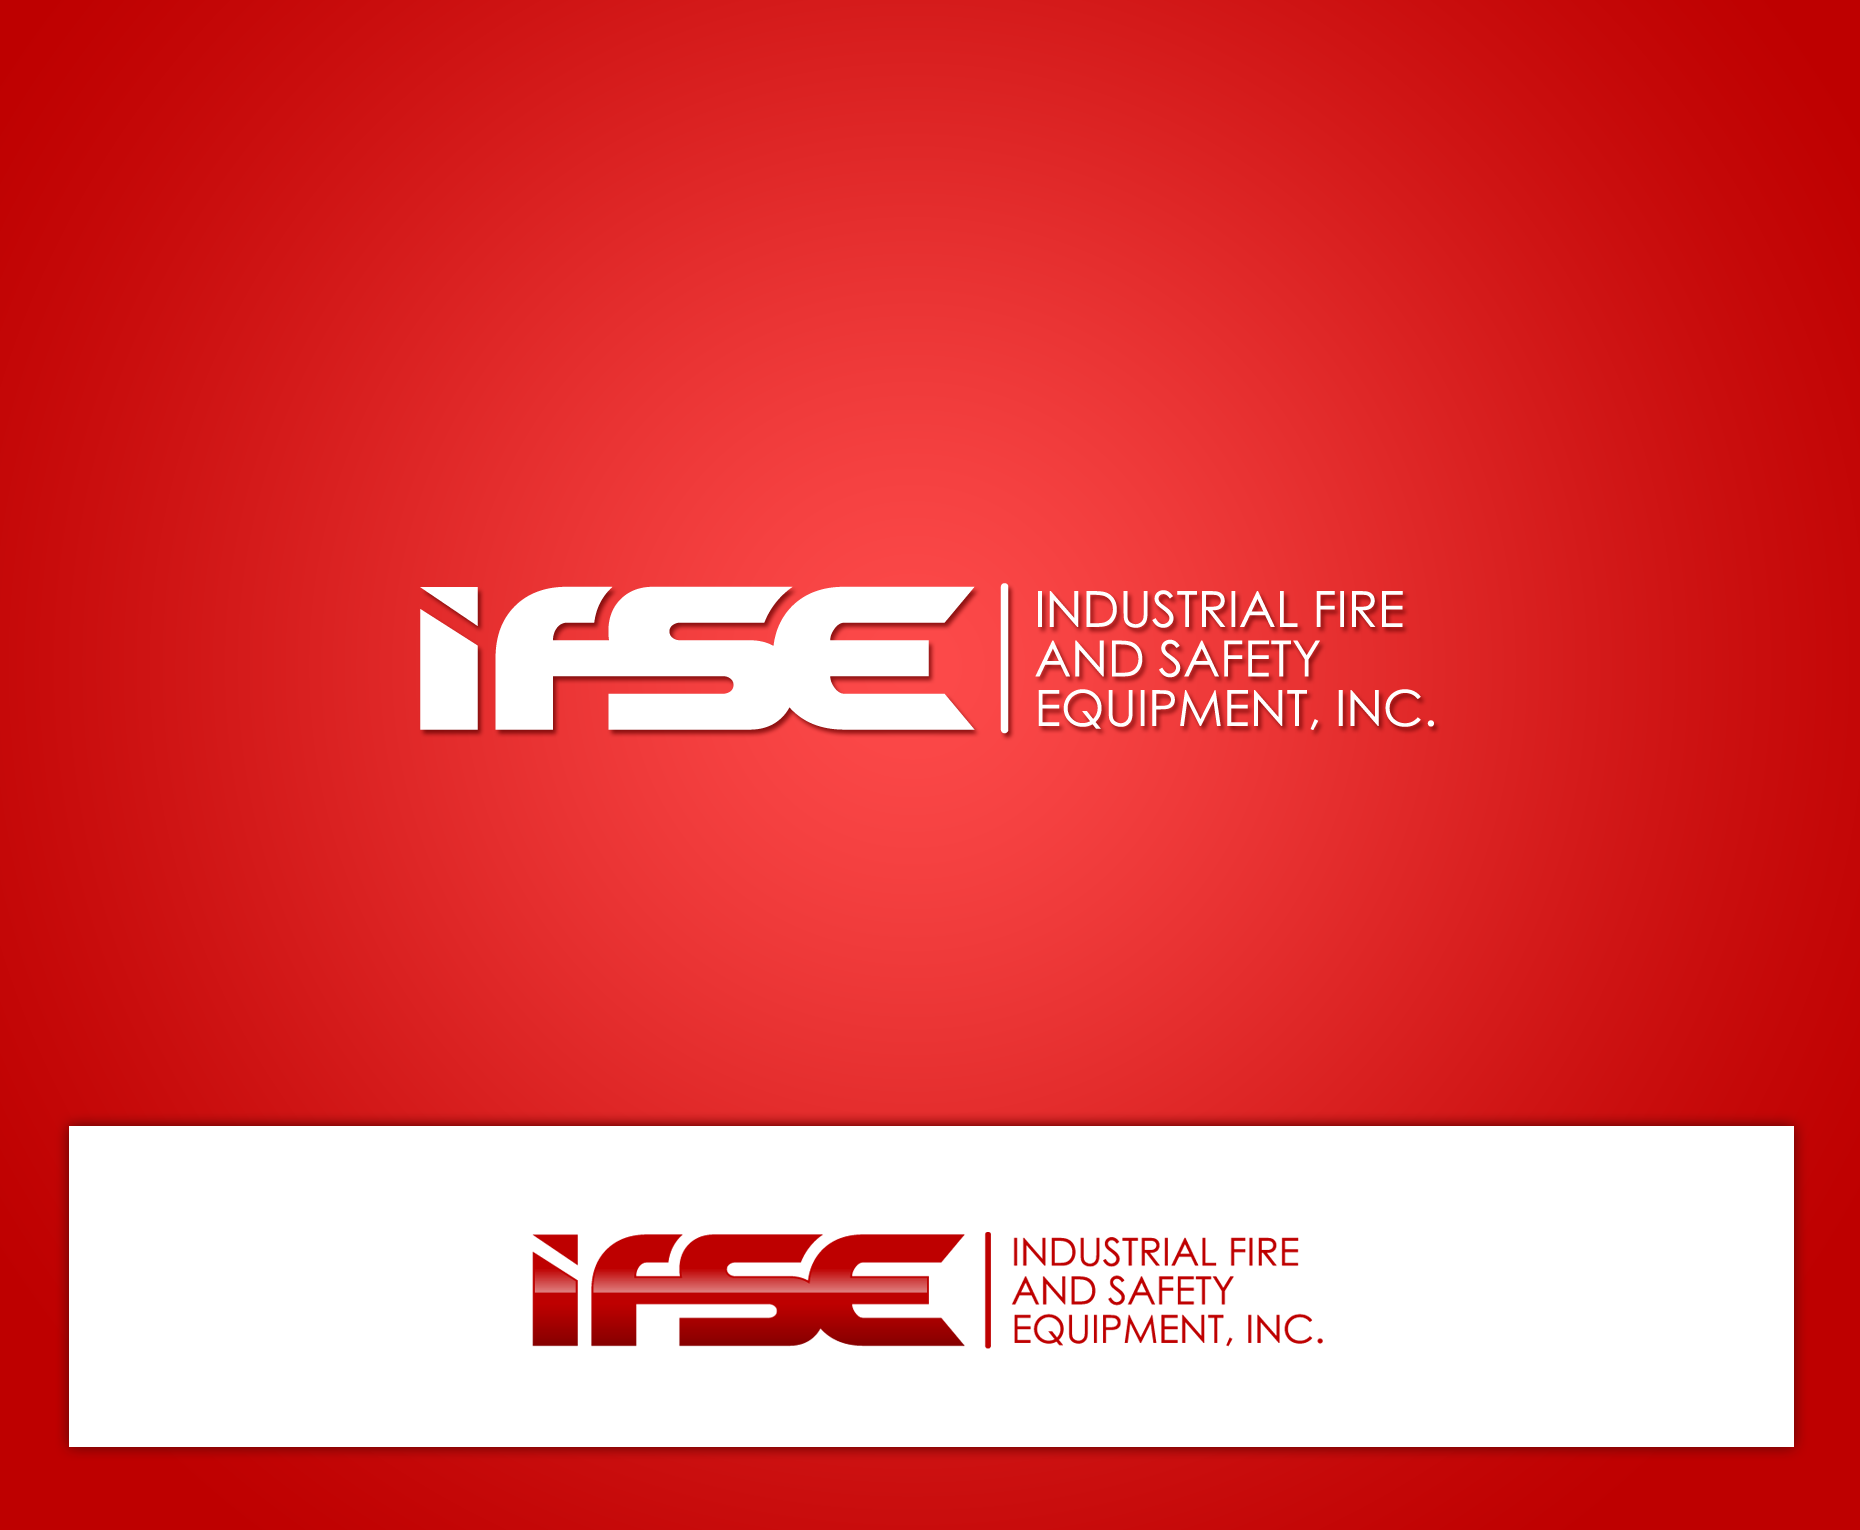 Logo Design by Yans - Entry No. 13 in the Logo Design Contest New Logo Design for Industrial Fire and Safety Equipment, Inc..